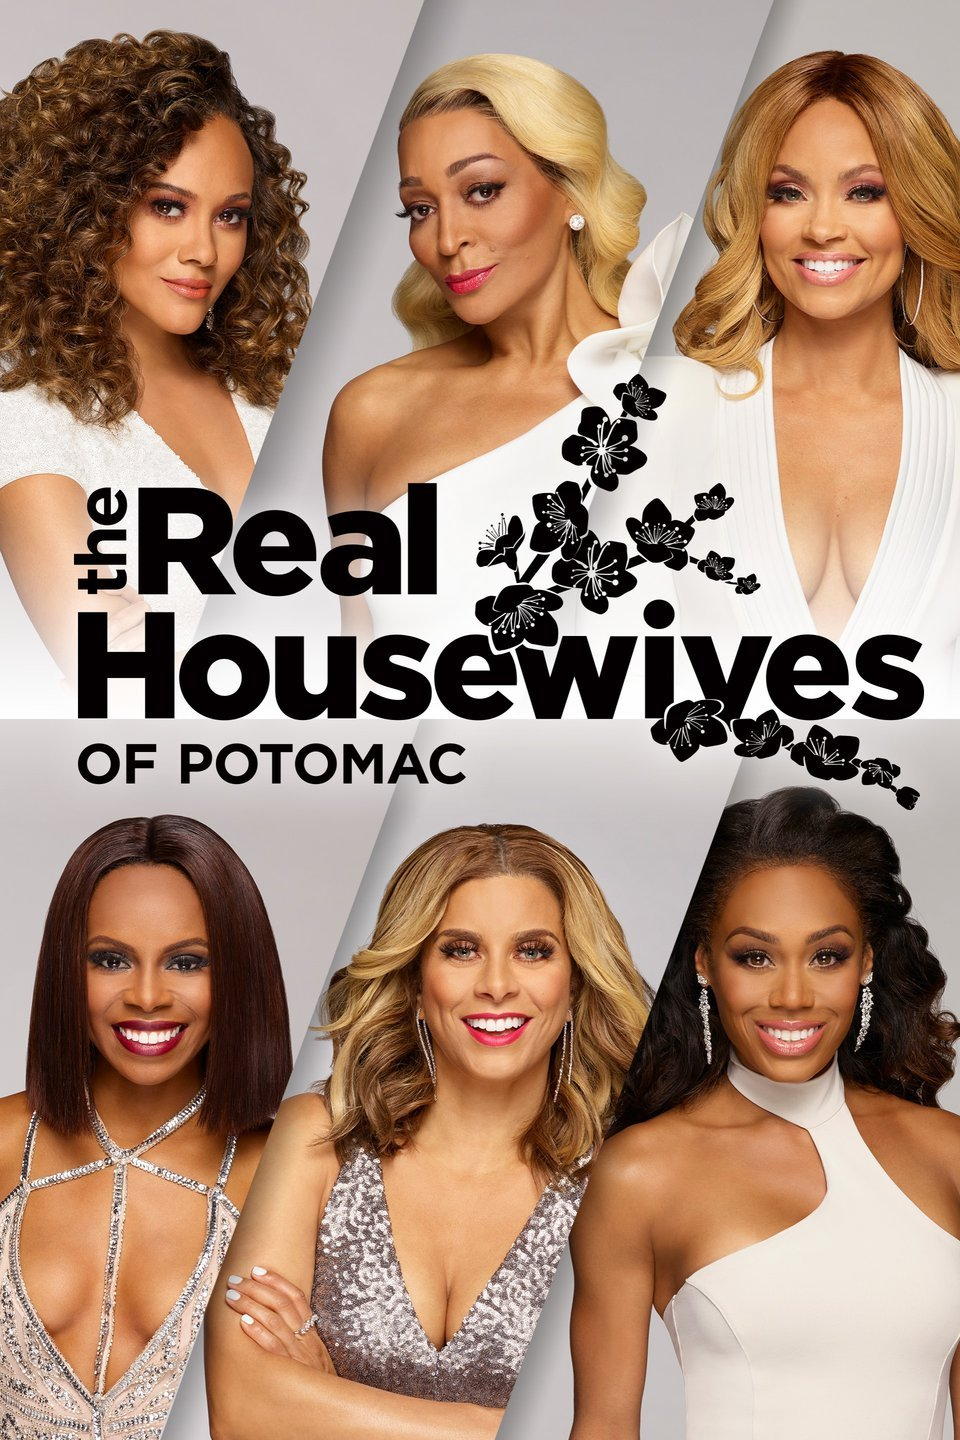 The Real Housewives of Potomac - Season 5 Episode 2